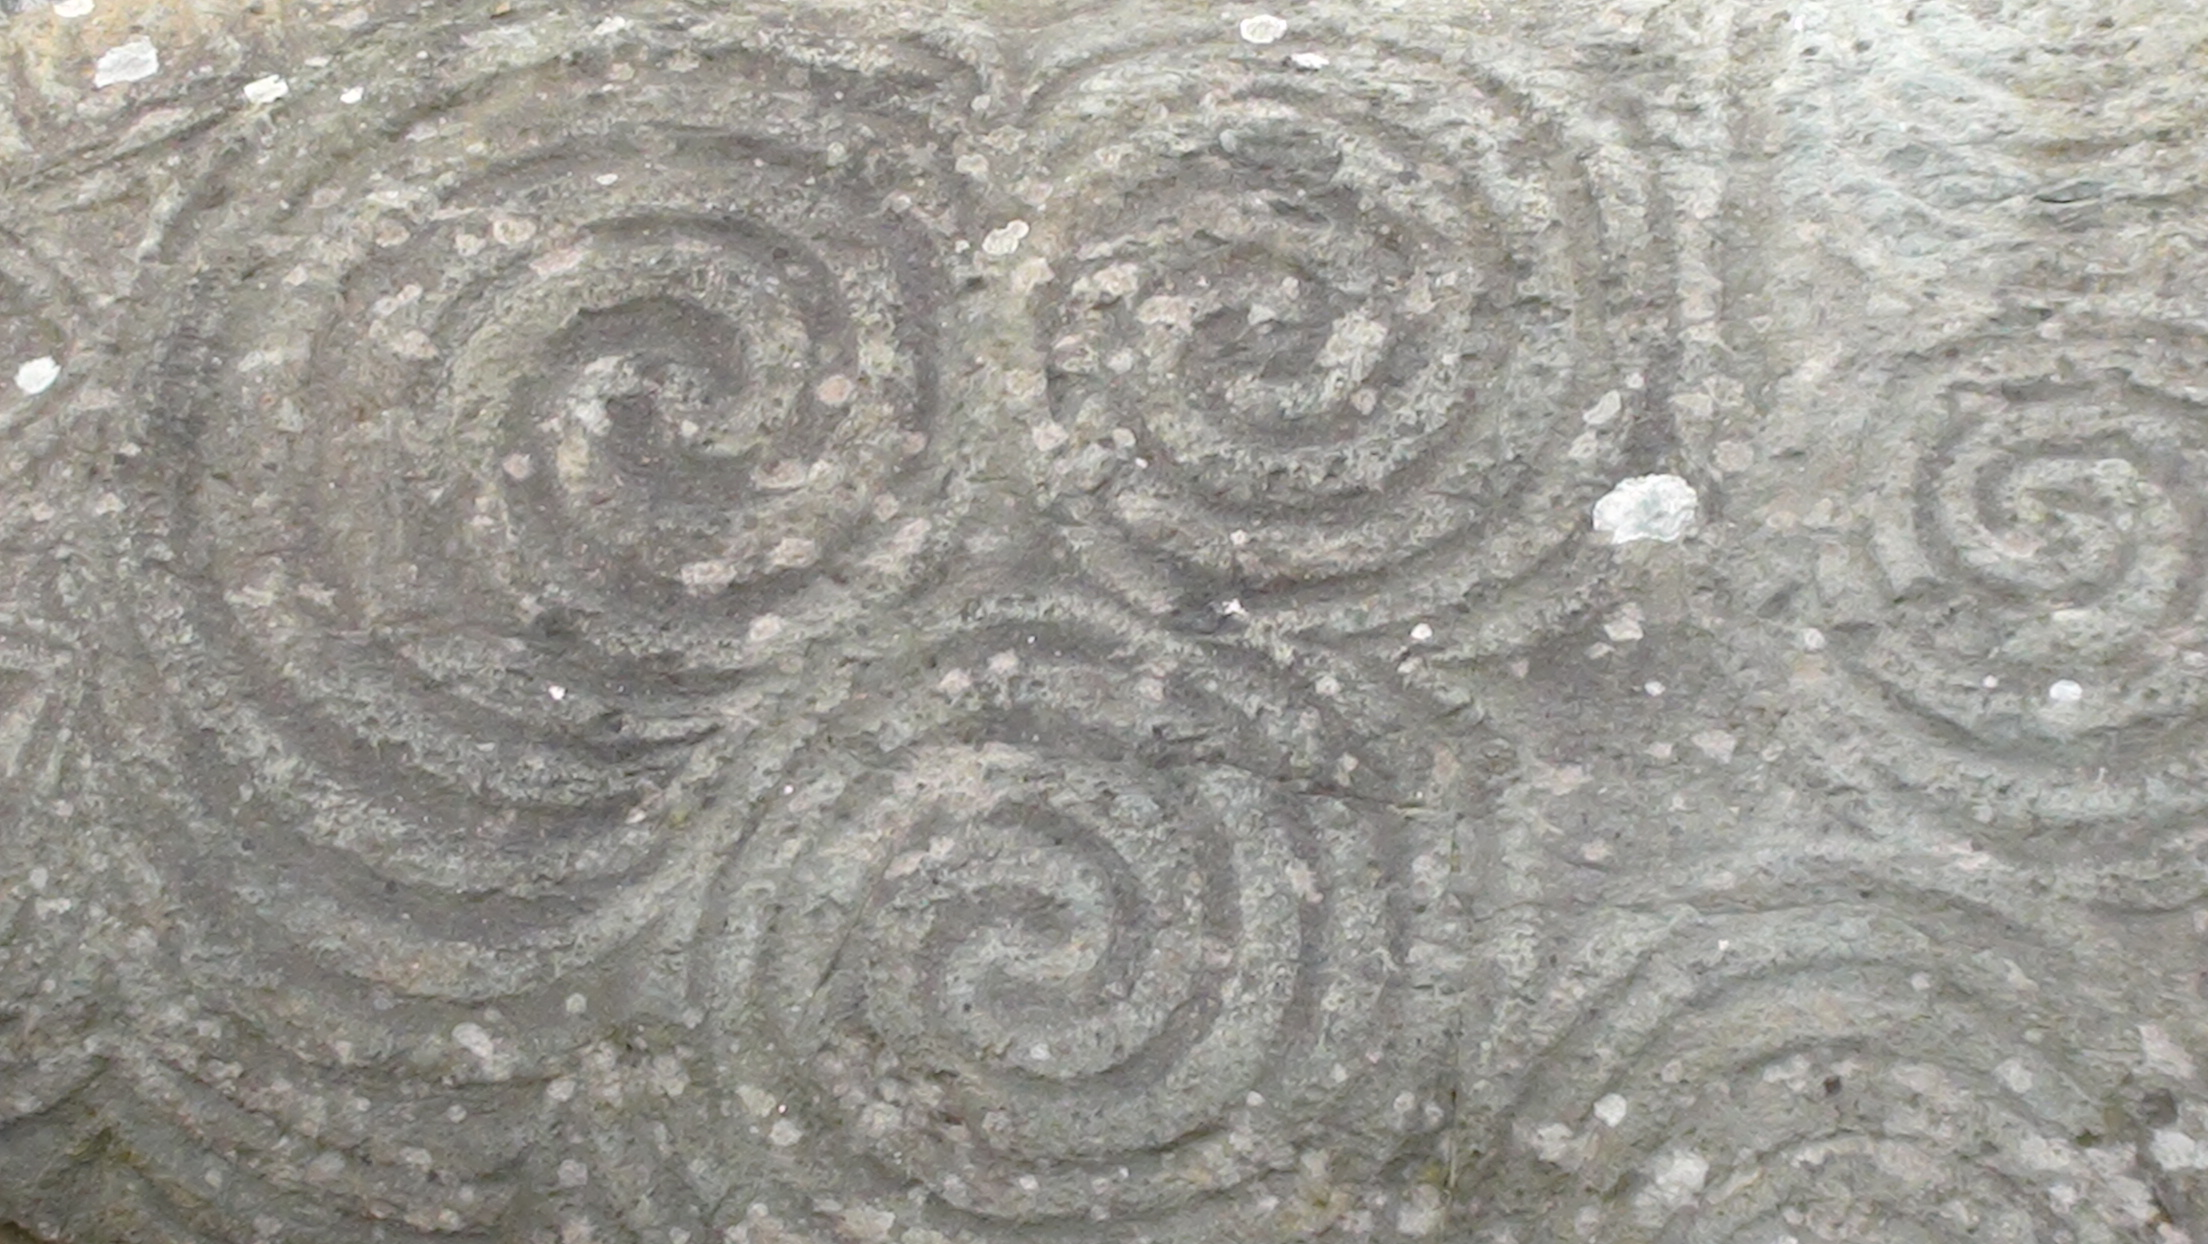 Detail of carving on entrance stone at Newgrange